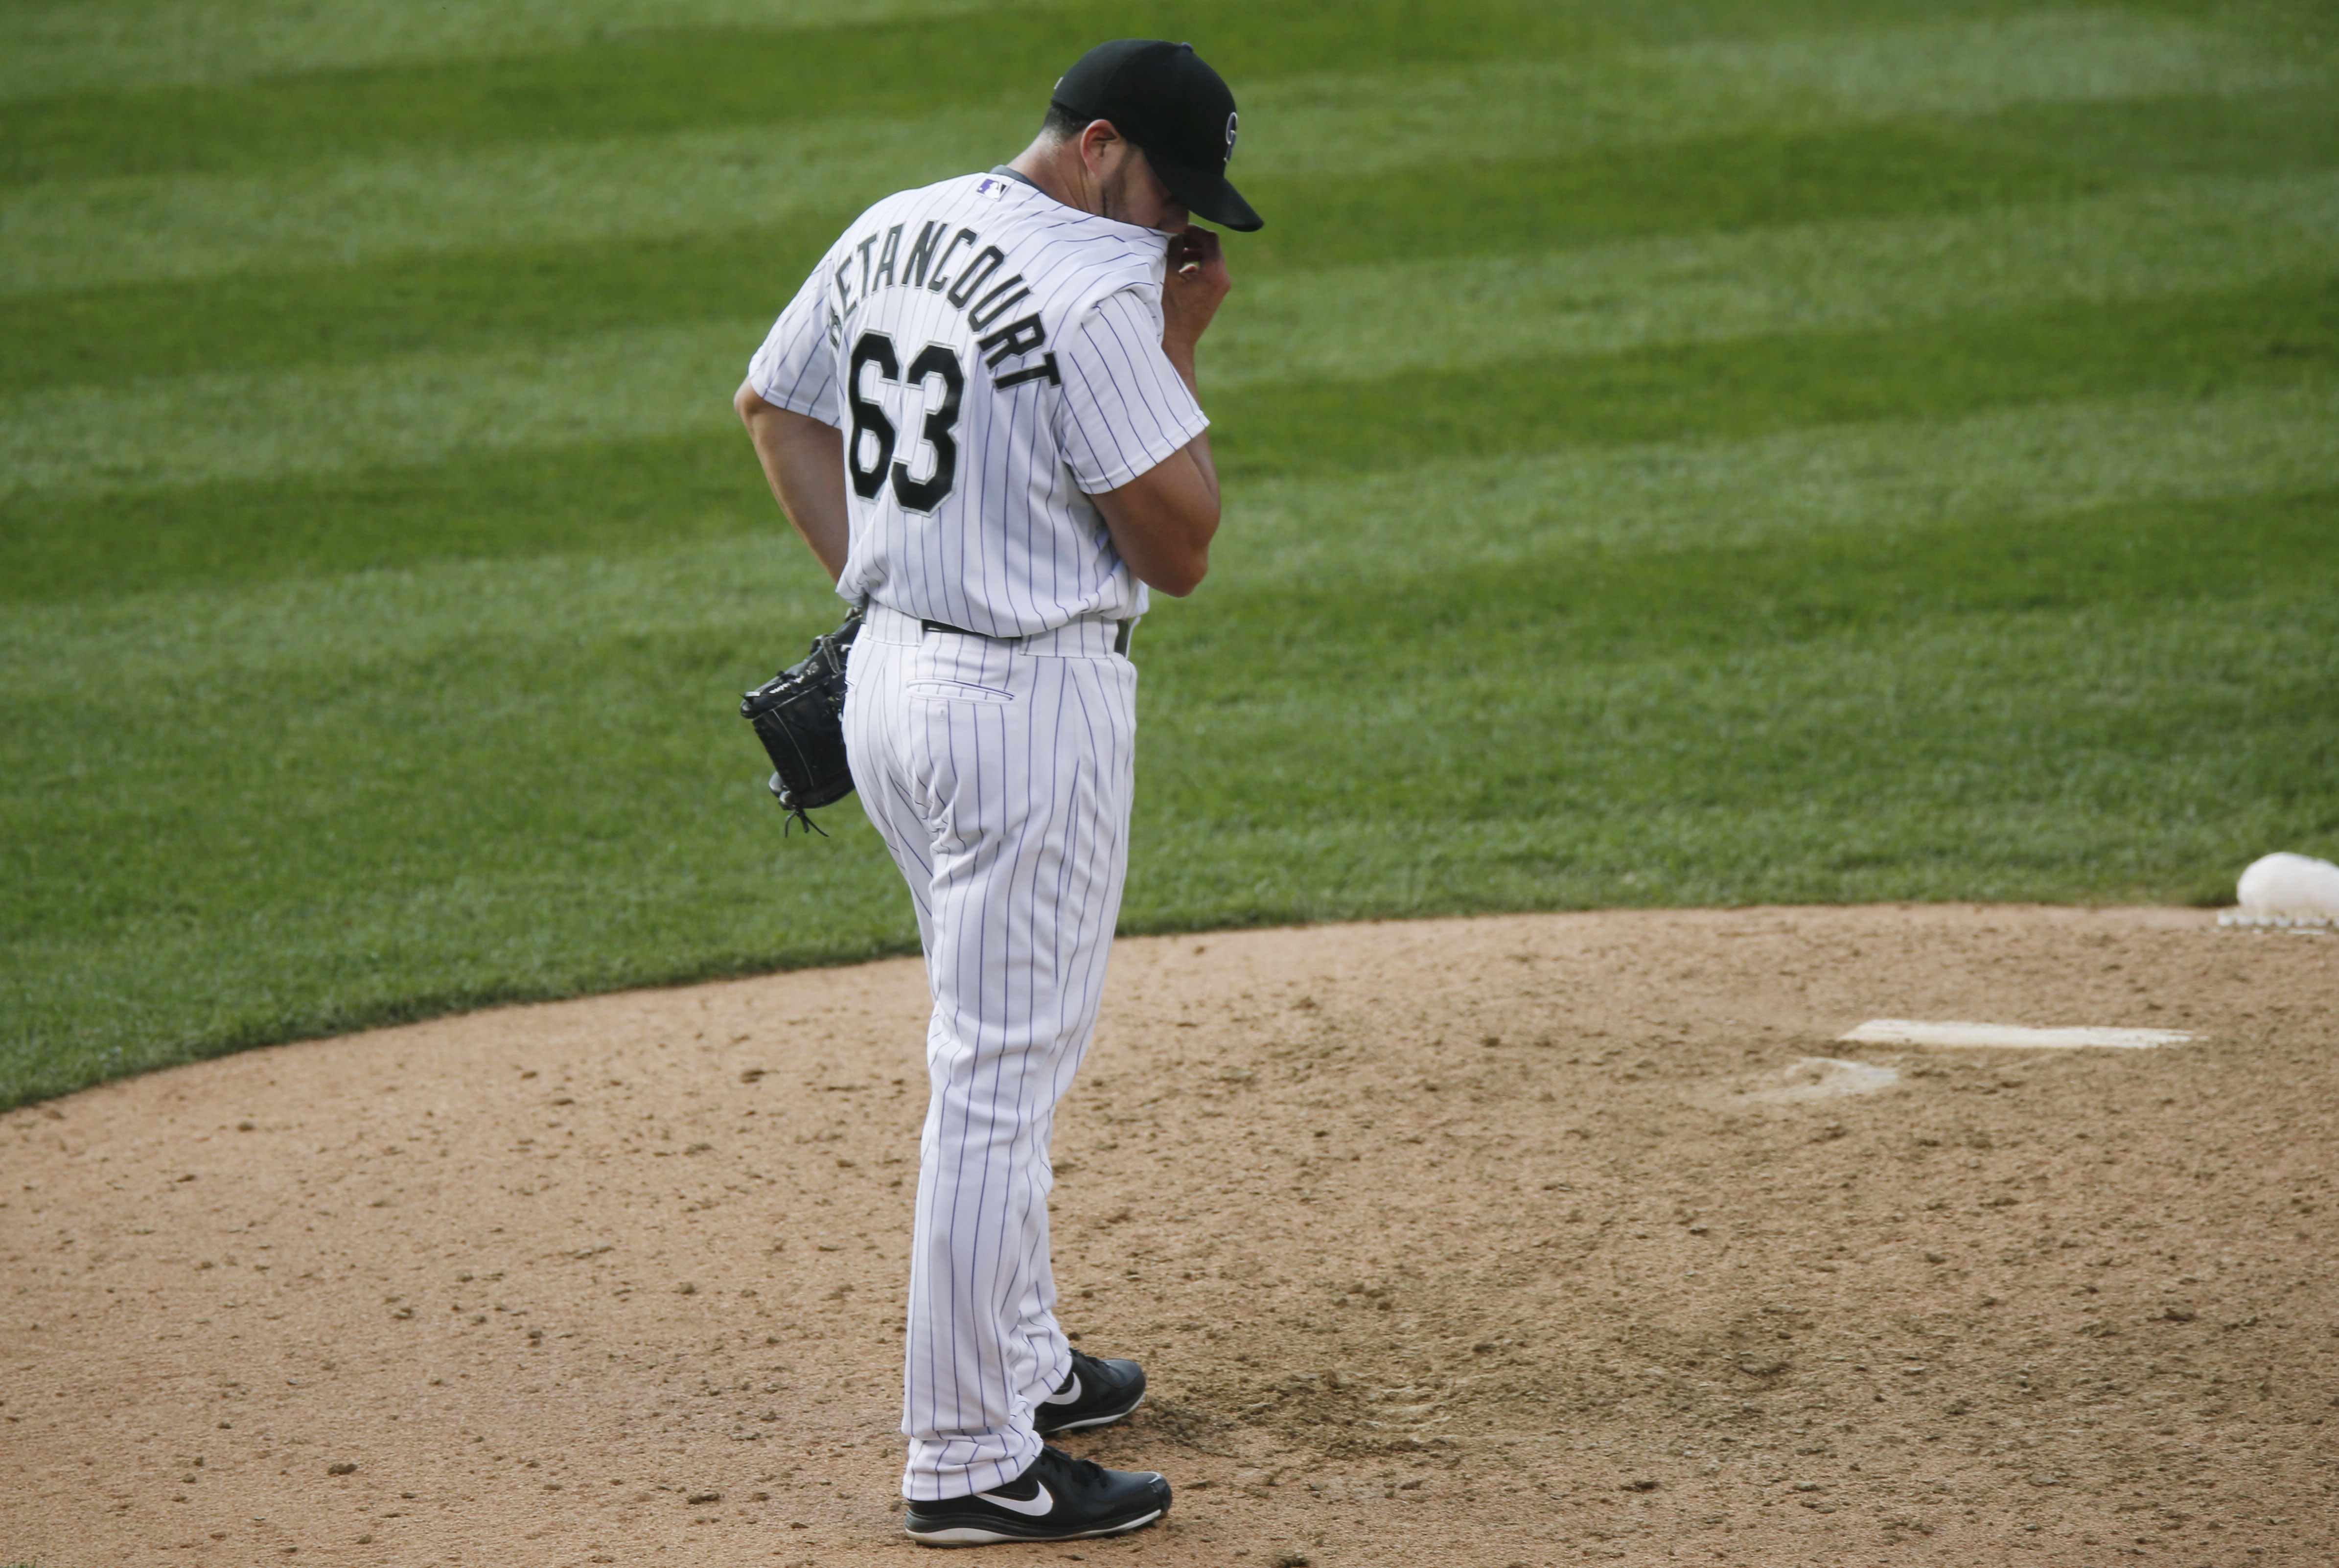 Colorado Rockies relief pitcher Rafael Betancourt reacts after giving up a single to allow in two runs to Miami Marlins' Jeff Baker in the bottom of the ninth inning of a baseball game Saturday, June 6, 2015, in Denver. Colorado won 10-5. (AP Photo/David